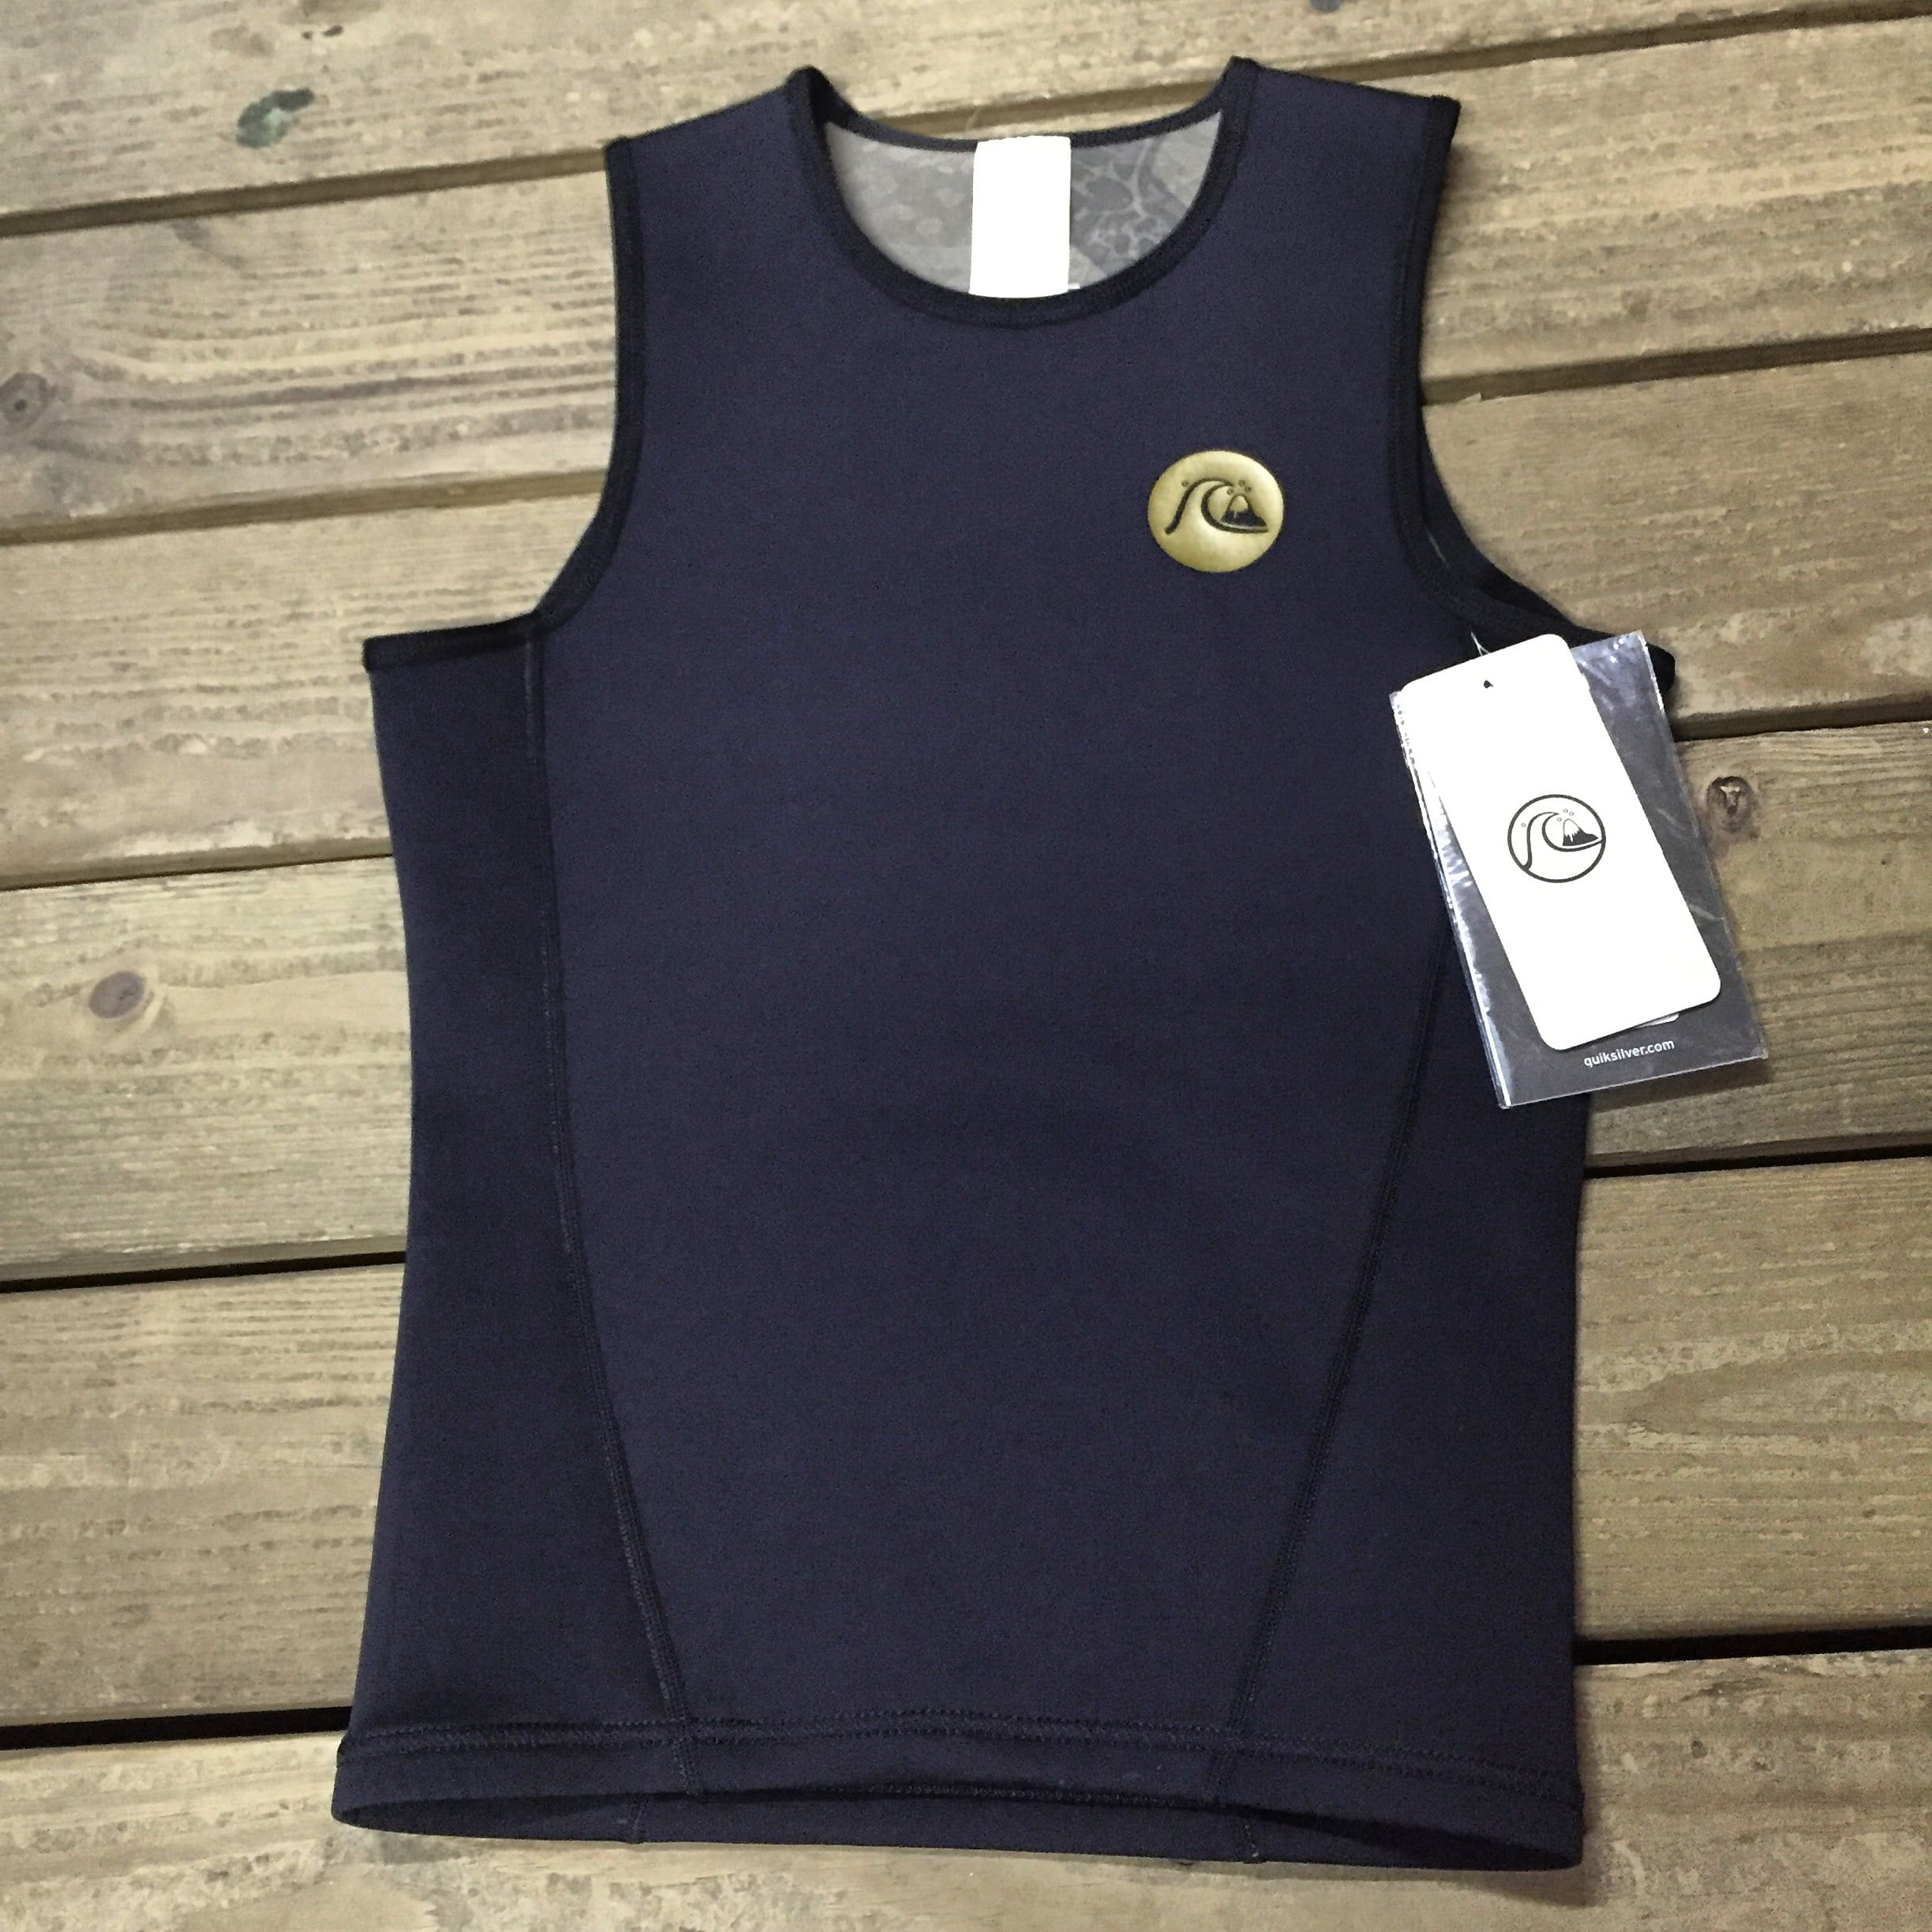 Here's some neoprene from Quik for those of you who don't like sleeves!